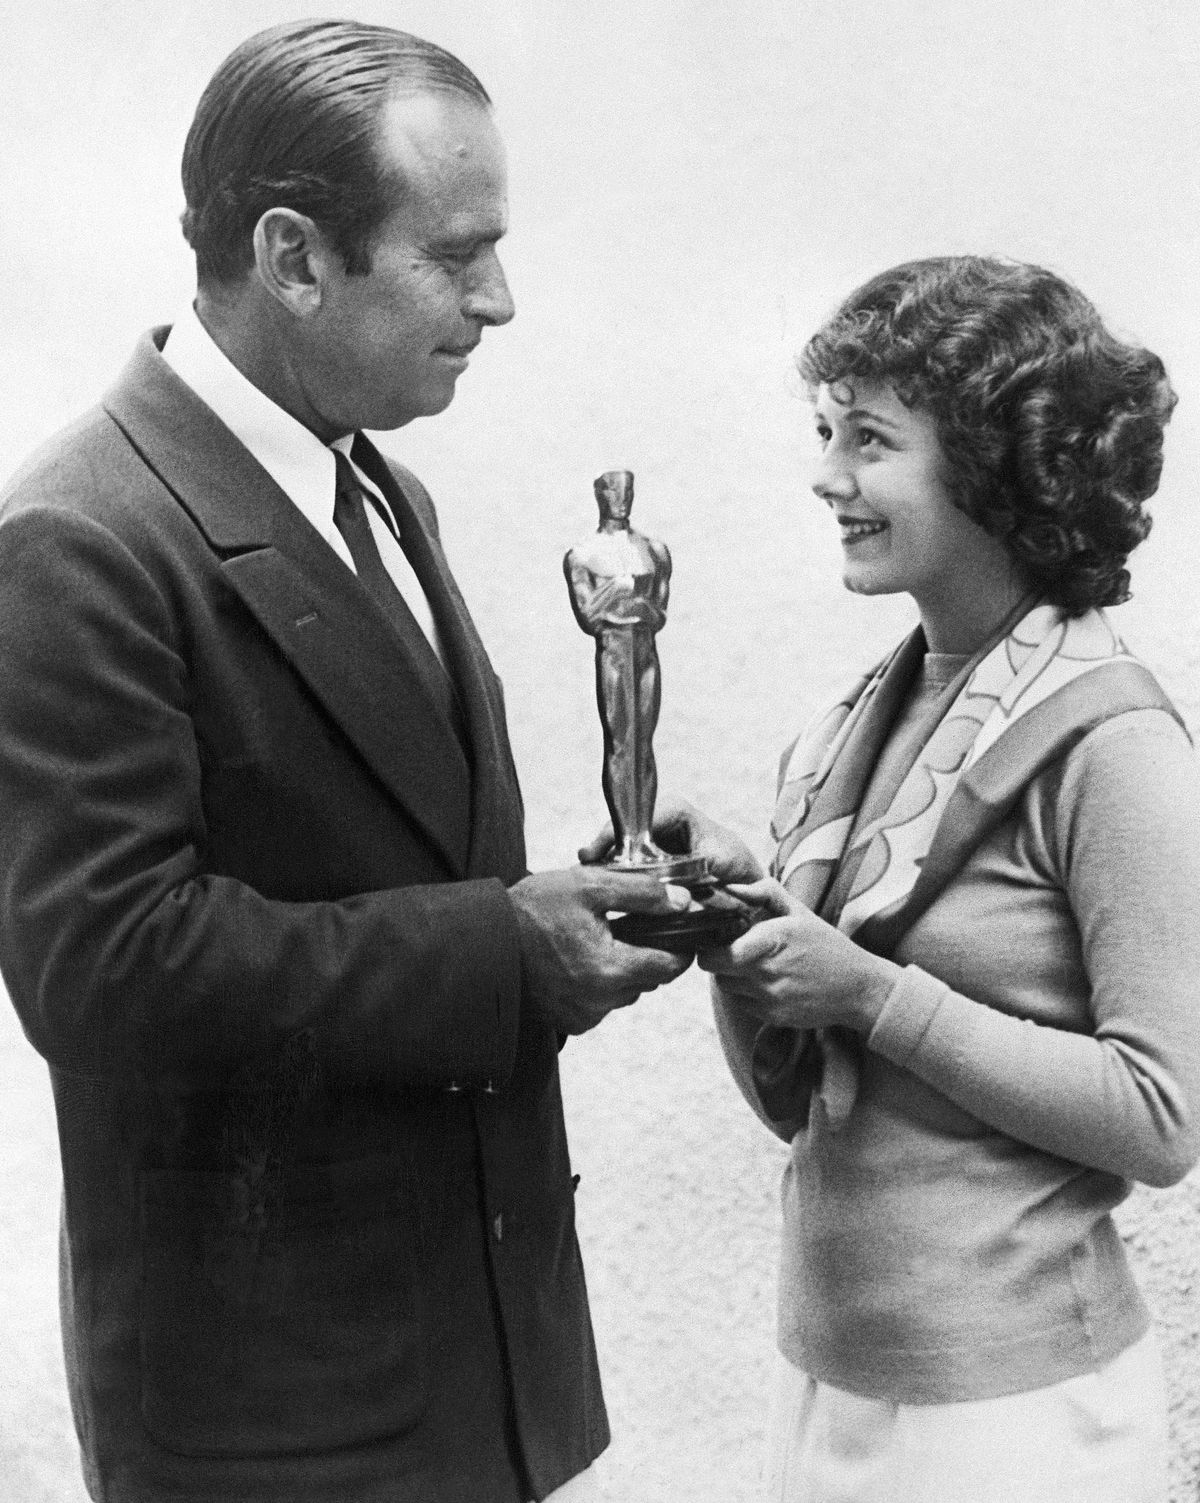 Janet Gaynor won the first Best Actress Academy Award in 1929.